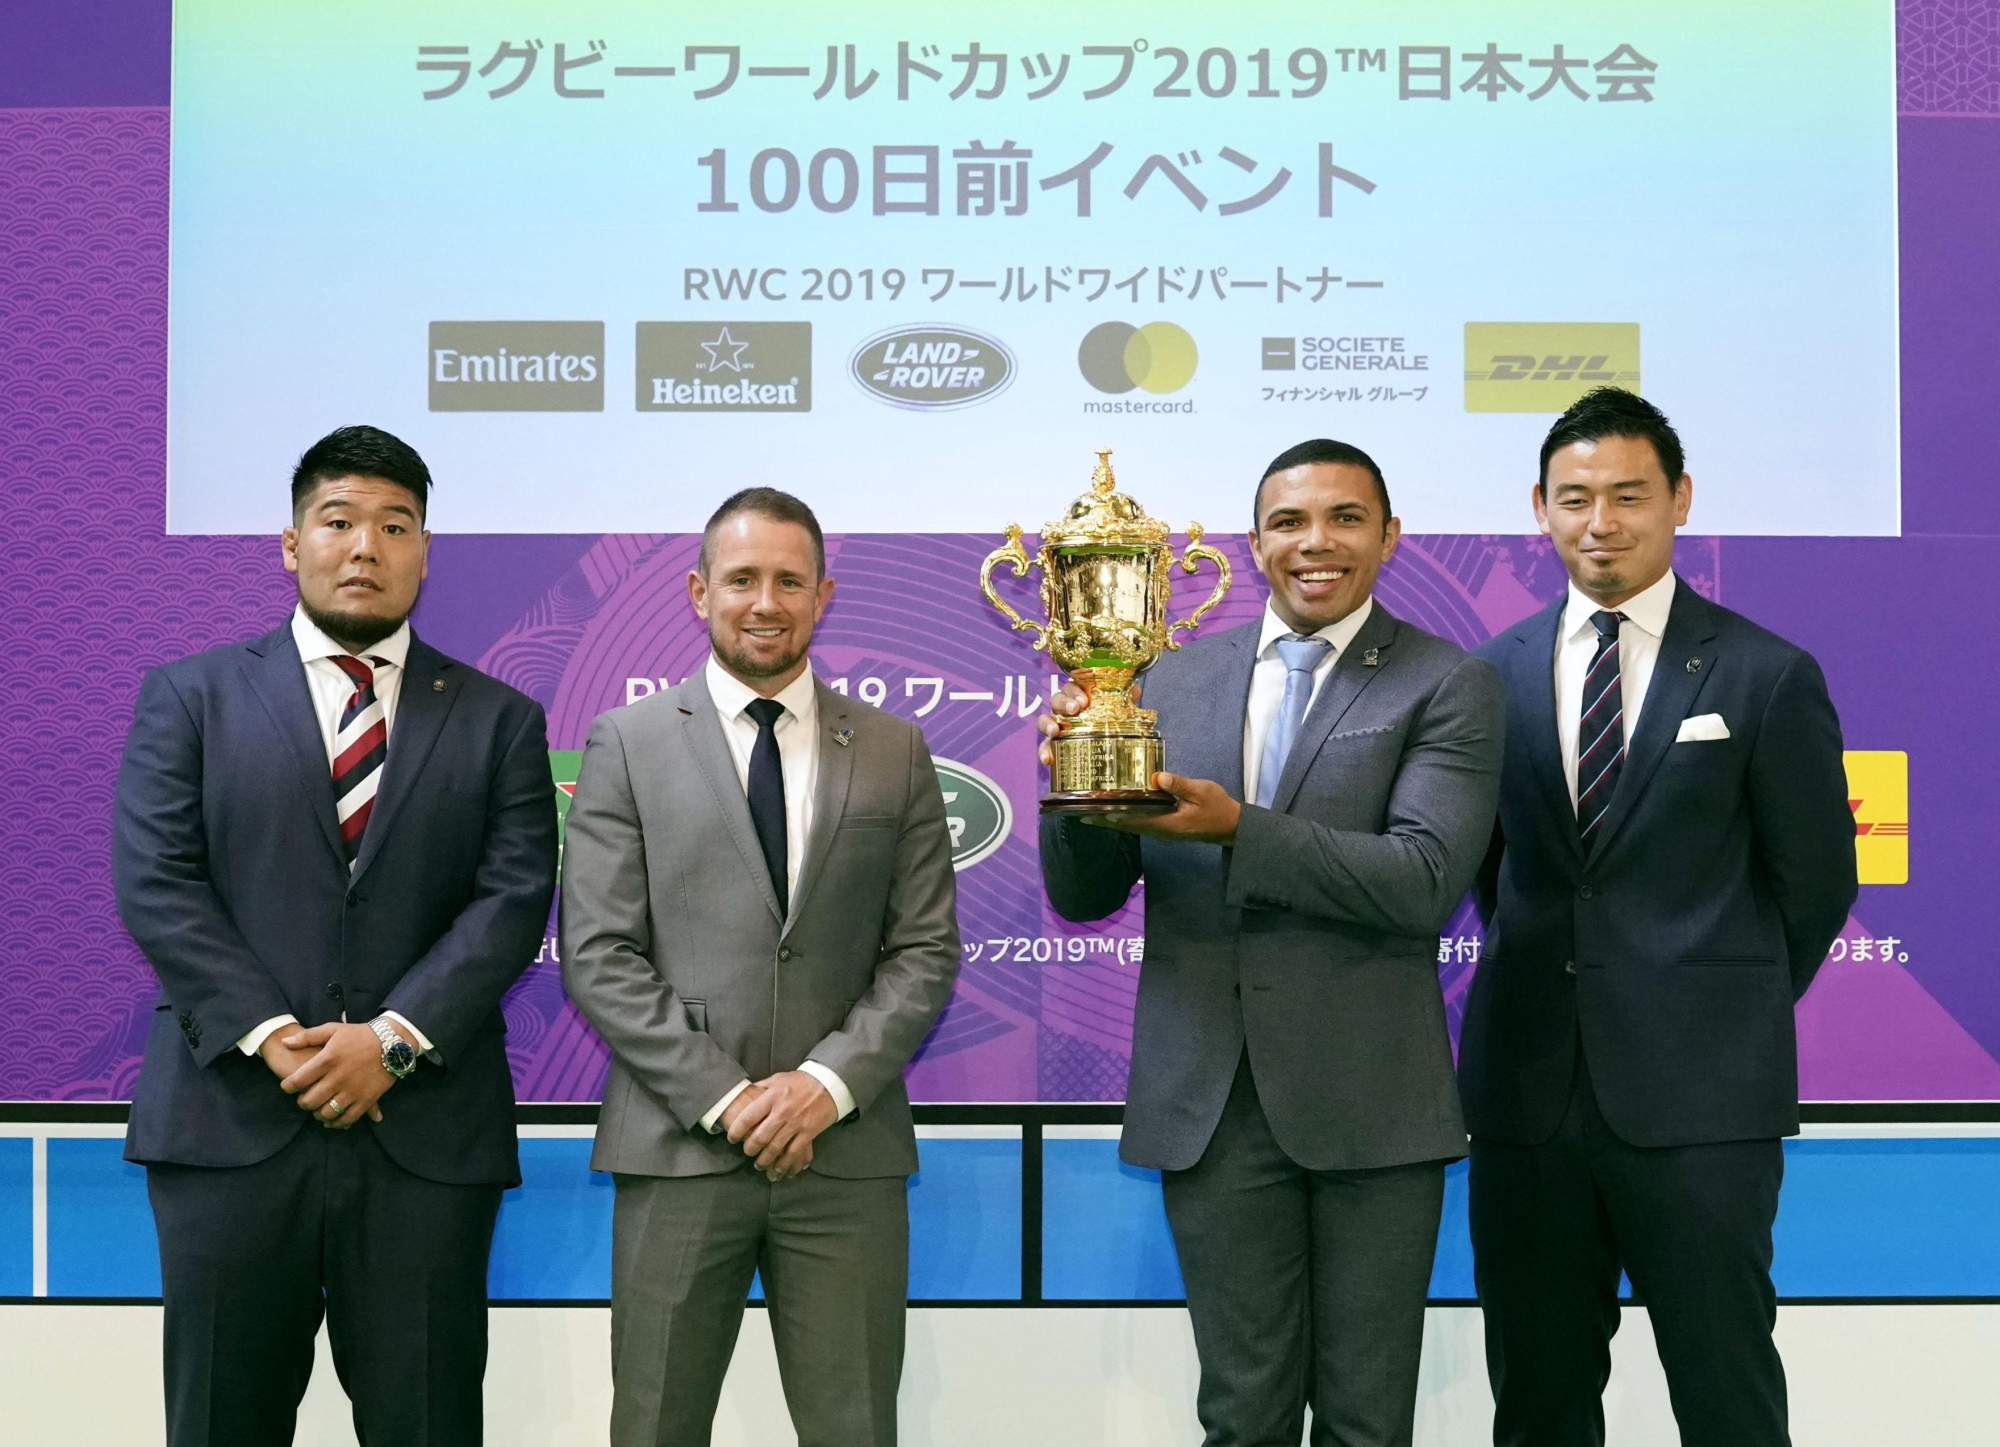 Former South Africa player Bryan Habana (second from right) holds the Webb Ellis Cup alongside (from left) Kensuke Hatakeyama, former Wales international Shane Williams and Ayumu Goromaru during a Rugby World Cup countdown event on Wednesday in Tokyo. | KYODO